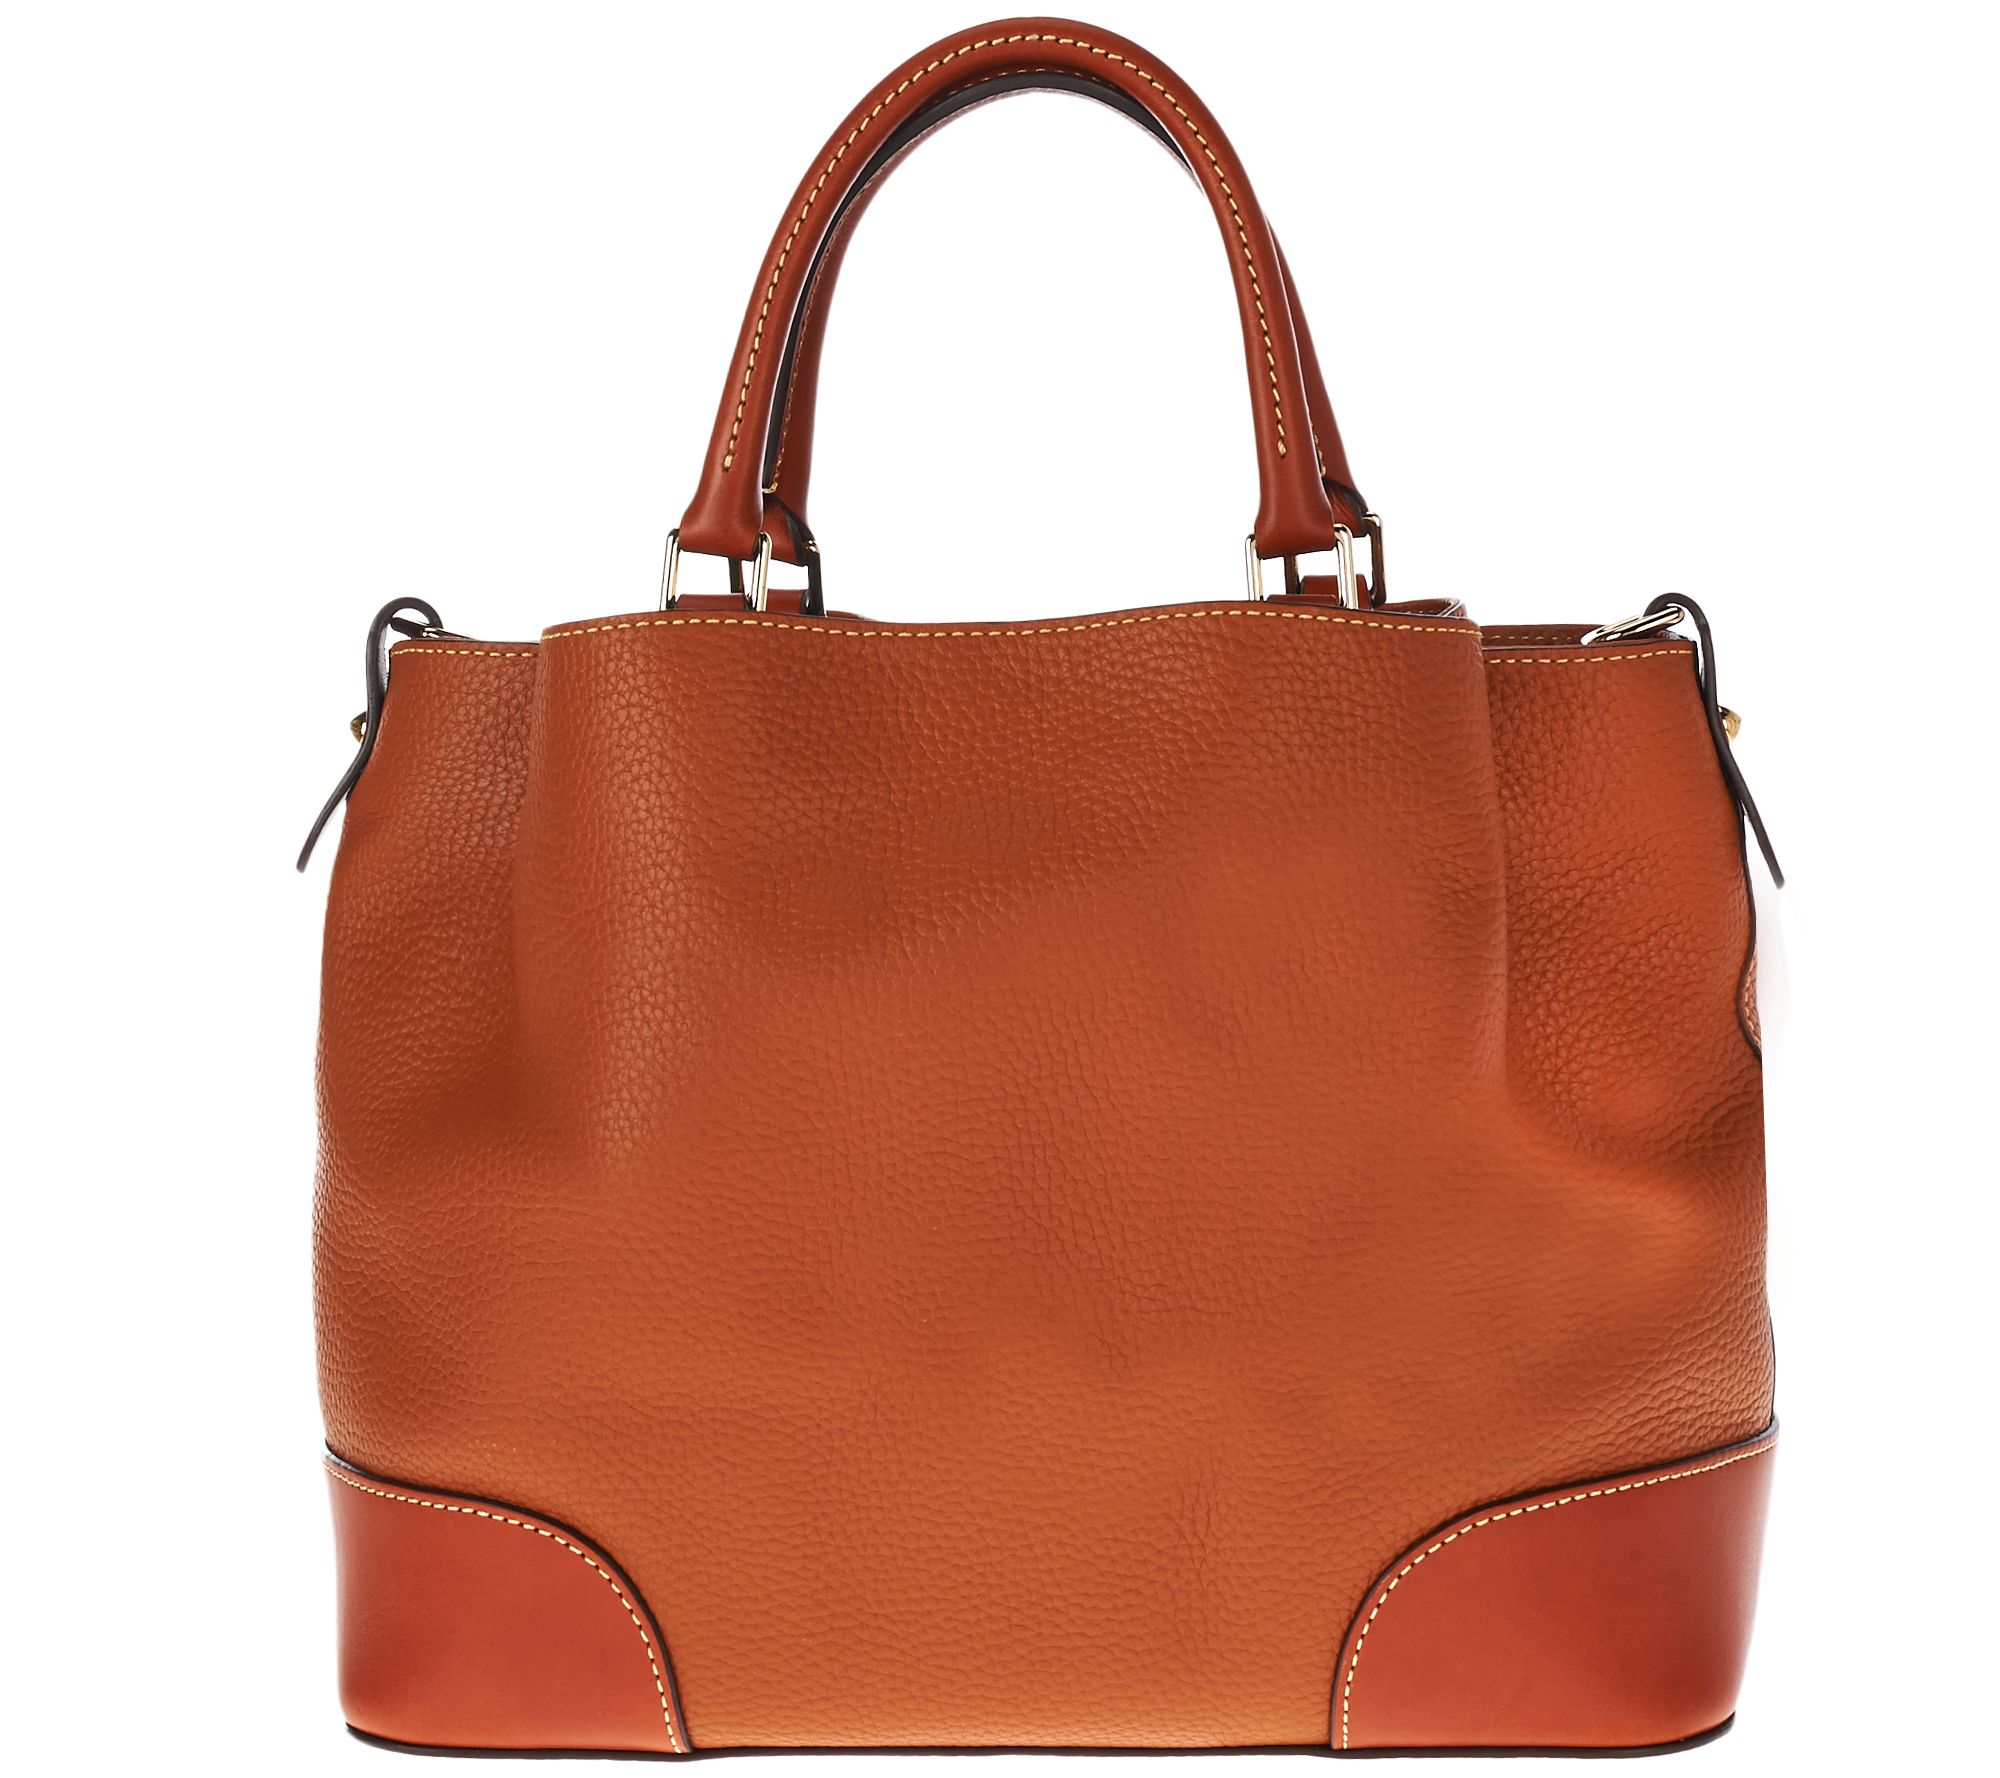 a57f0a1e10 Dooney   Bourke Pebble Leather Brenna Satchel with Accessories - Page 1 —  QVC.com